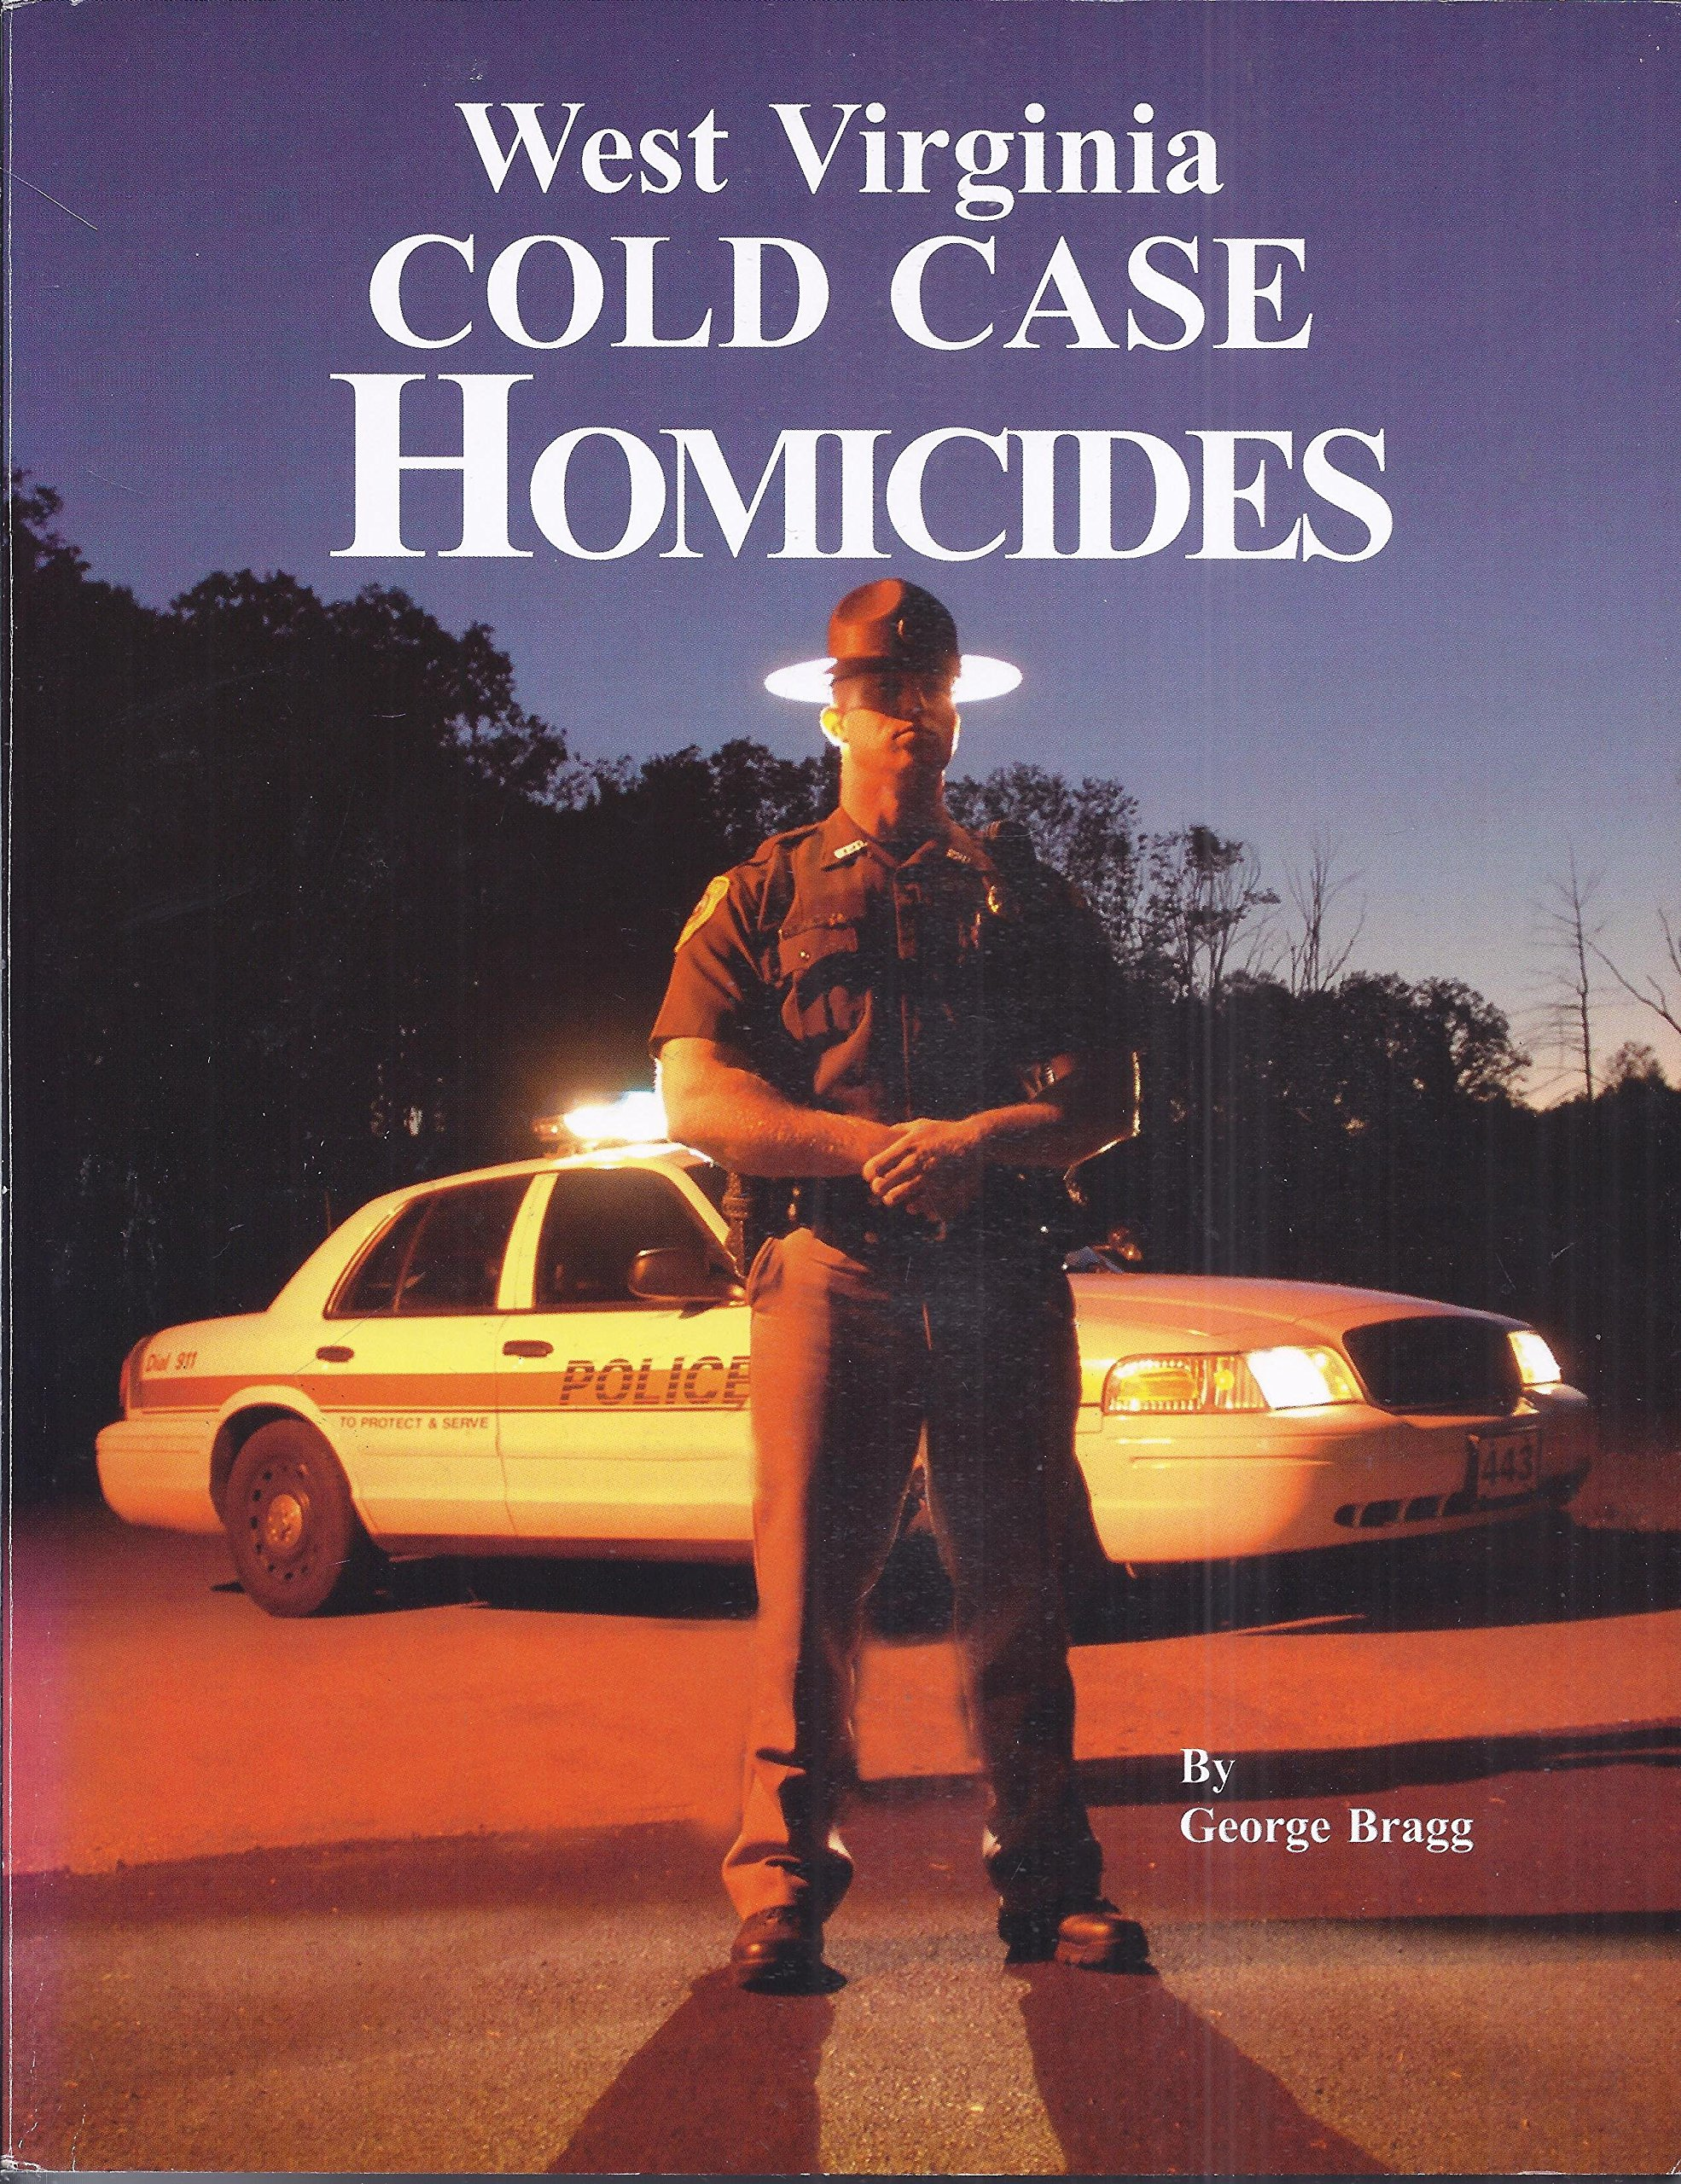 West Virginia Cold Case Homicides: George Bragg